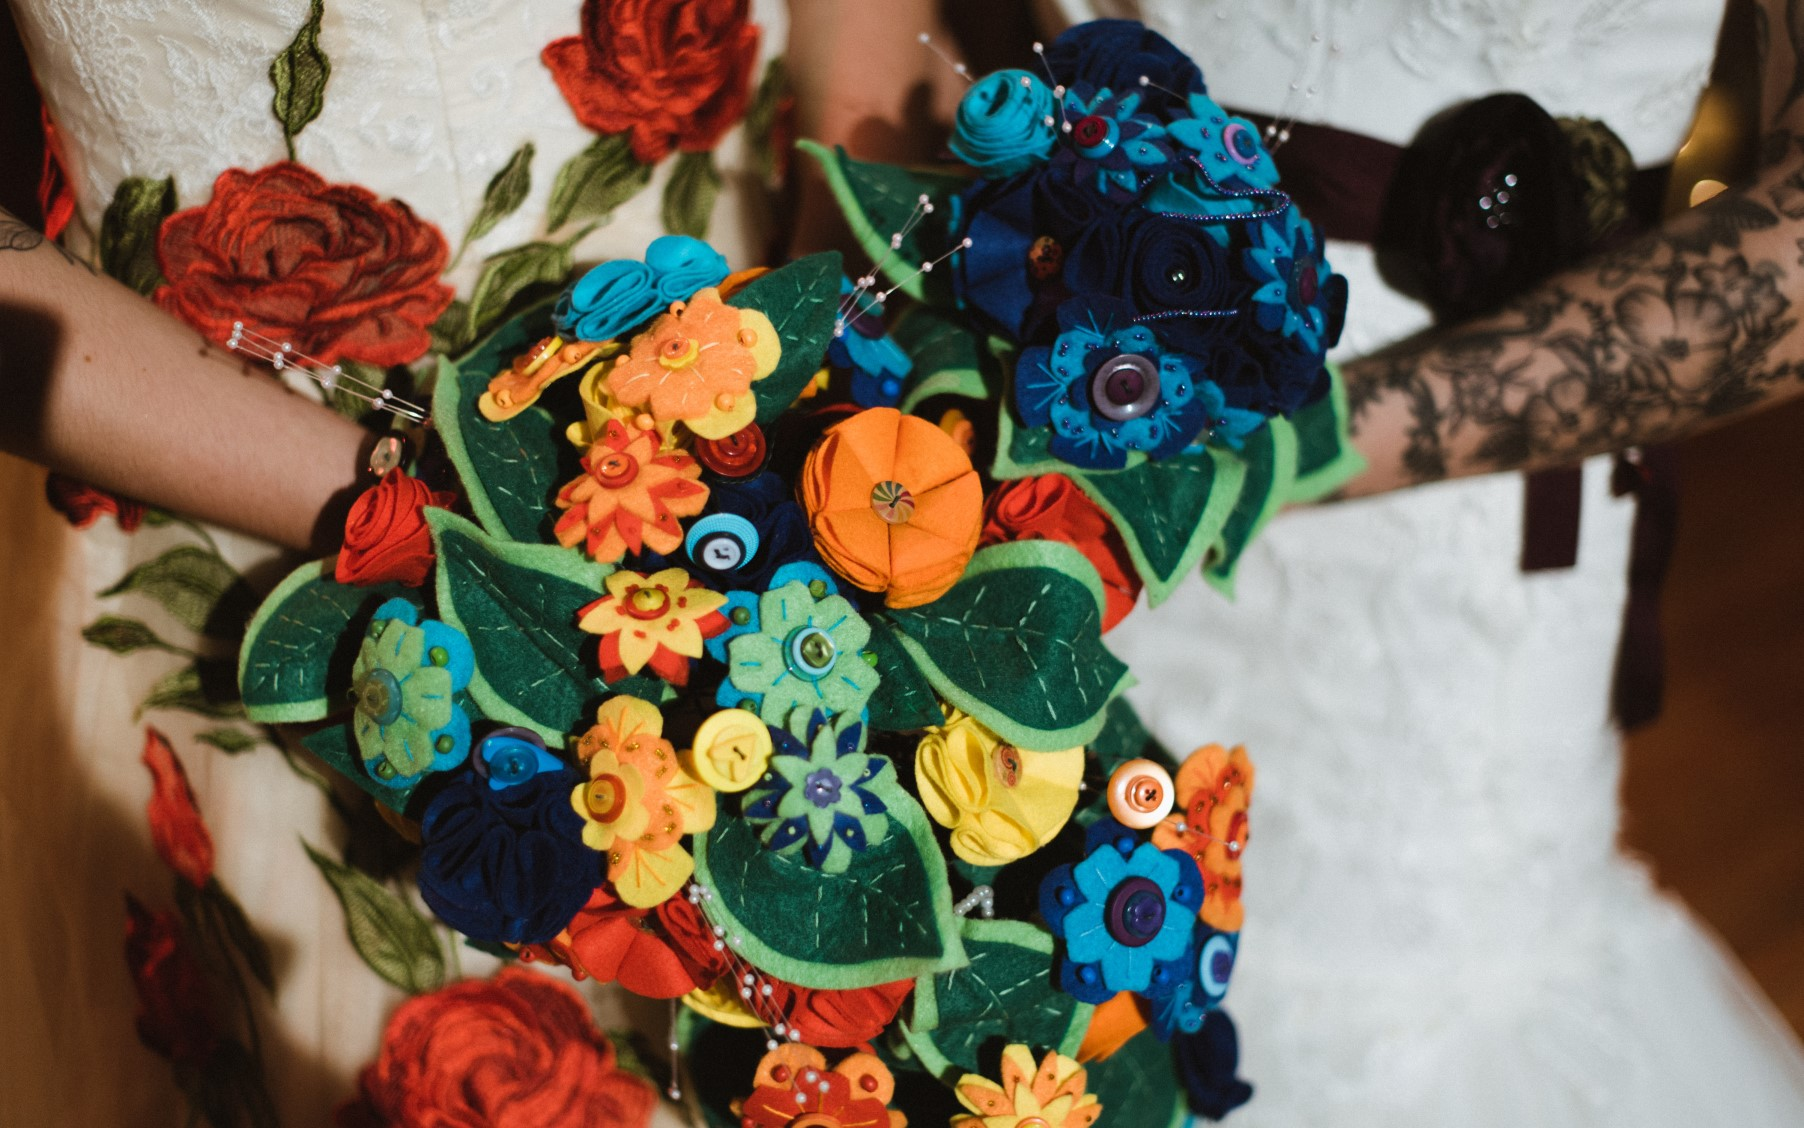 Eclectic Wedding- Alexandra Holt Photography- The Boo Theatre- Unconventional Wedding- Unique Wedding- Quirky Wedding- Halloween Wedding- Unique Bridalwear- Alternative Bridalwear- Unique Wedding Dress- Colourful Wedding- Alternative Wedding- Alternative Bouquet- Felt Bouquet- Unique Wedding Bouquet